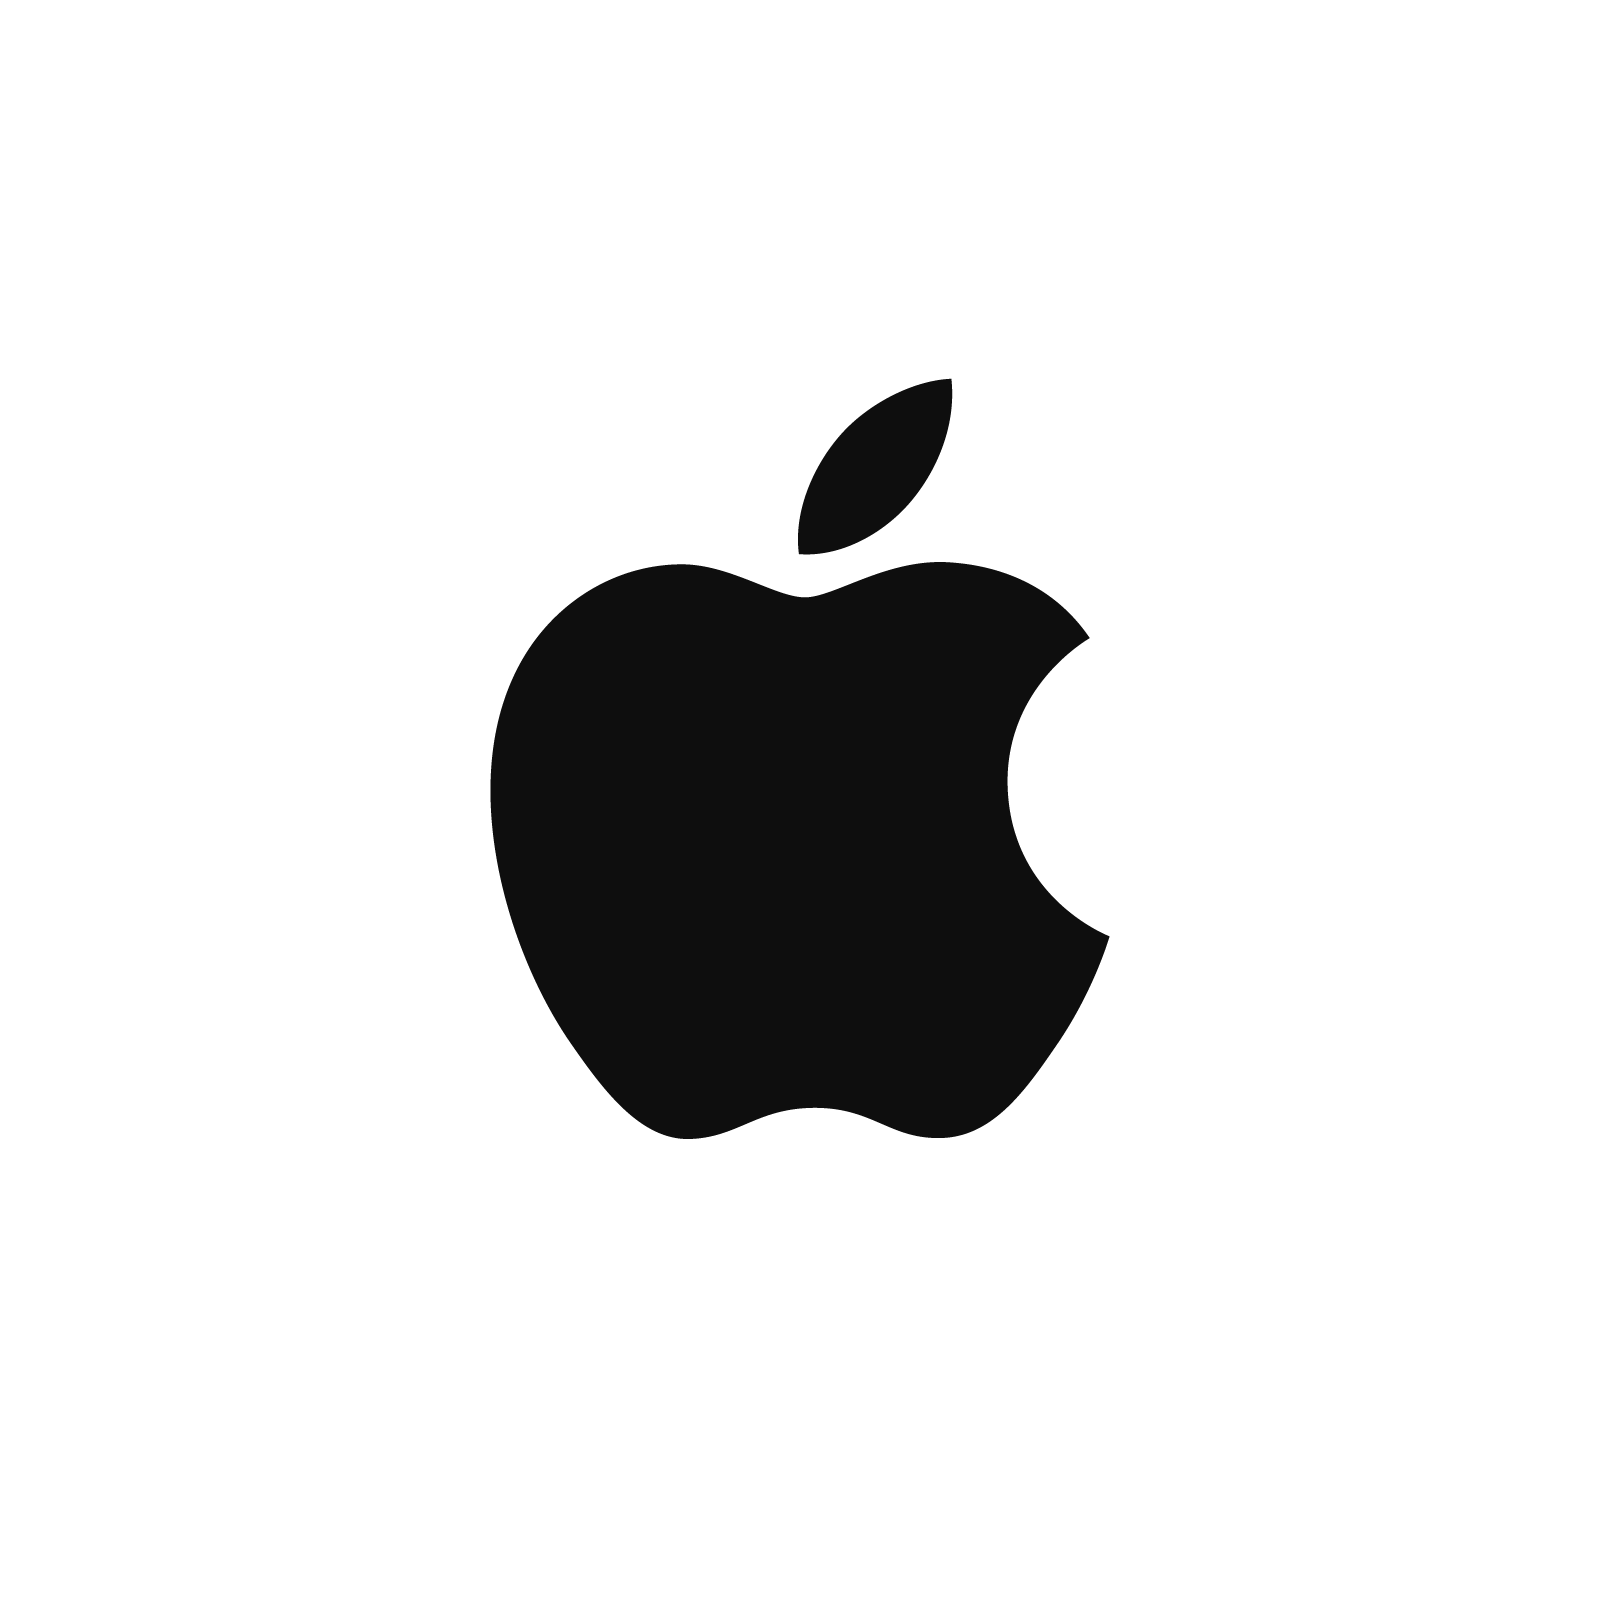 Image Label: Logo | Seller Name: Apple | Location: United States Of America | California | Cupertino | Summary: Apple Inc. is an American multinational technology company that specializes in consumer electronics, computer software, and online services. Apple is the world's largest technology company by revenue